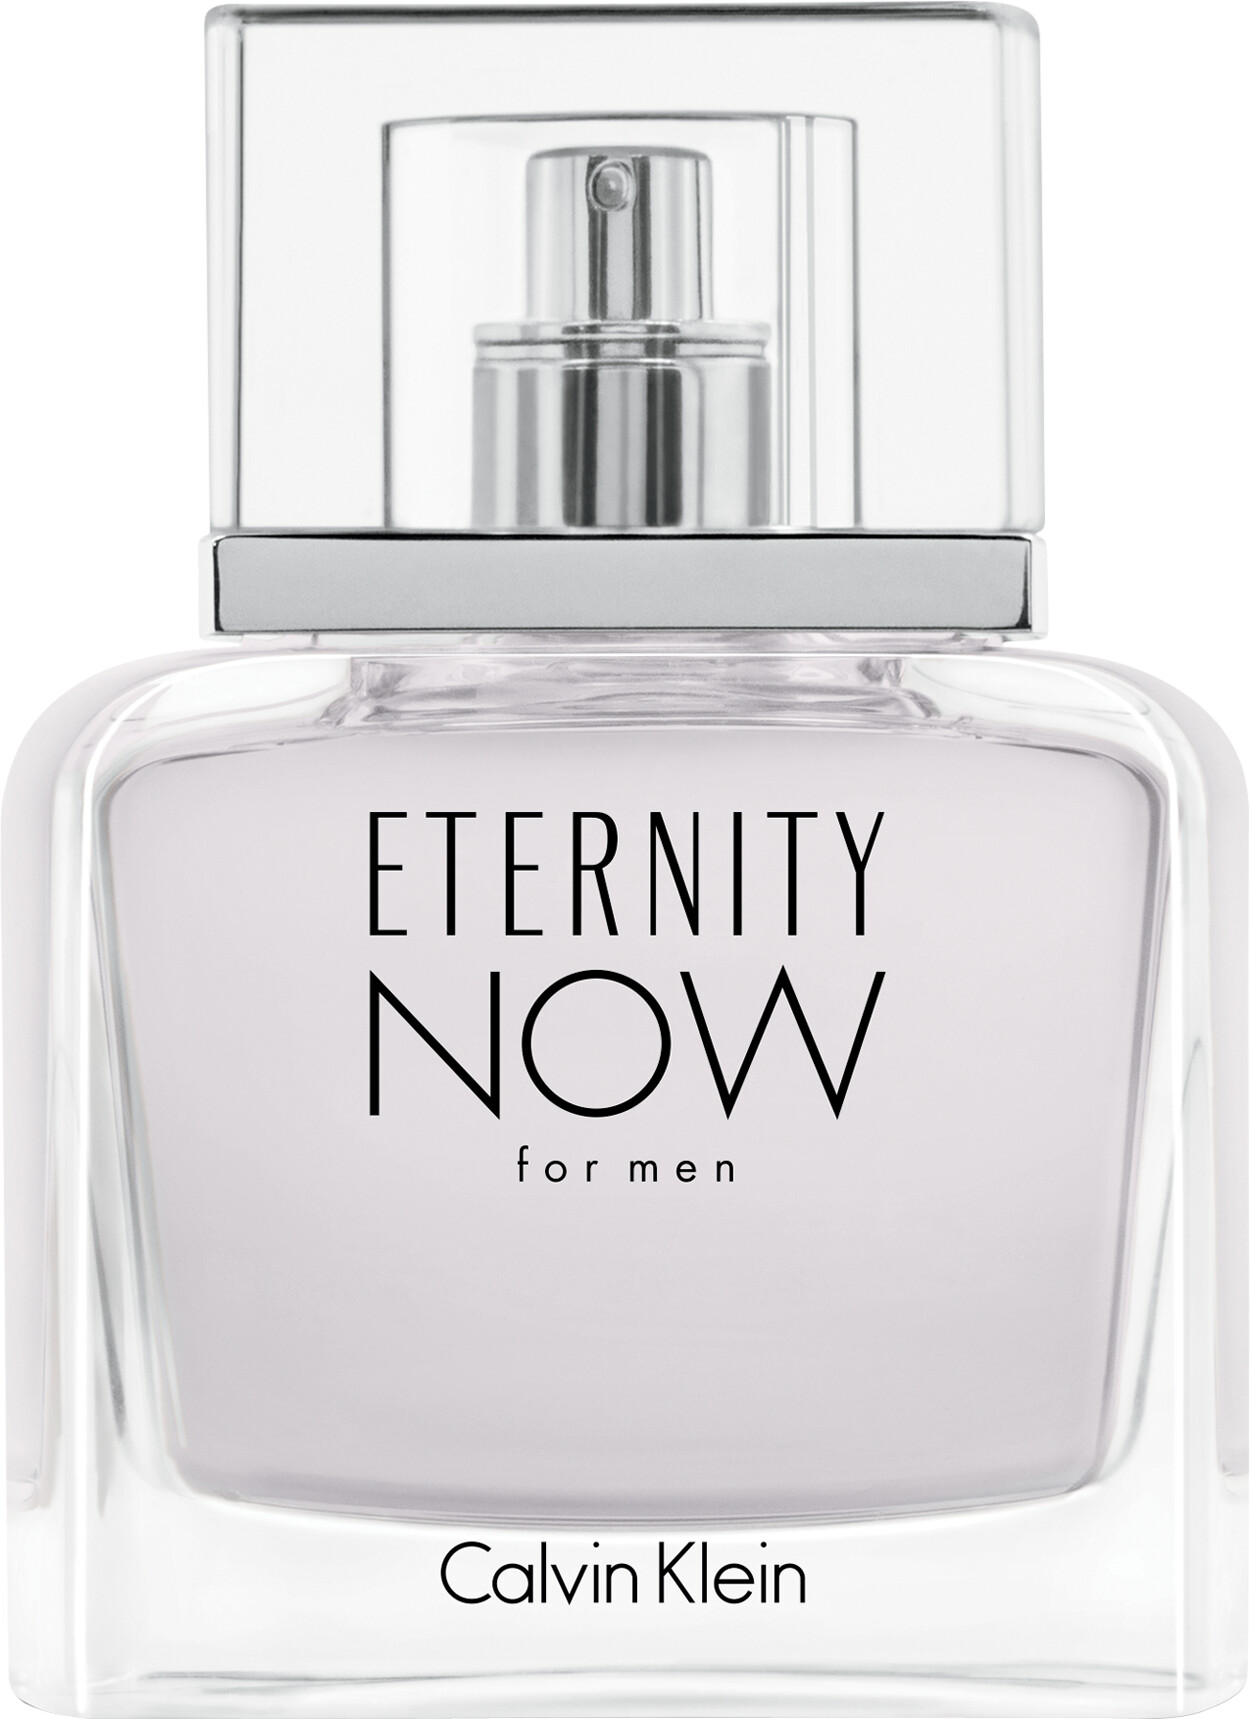 b921f5088 ... Calvin Klein Eternity Now for Men Eau de Toilette Spray 30ml ...